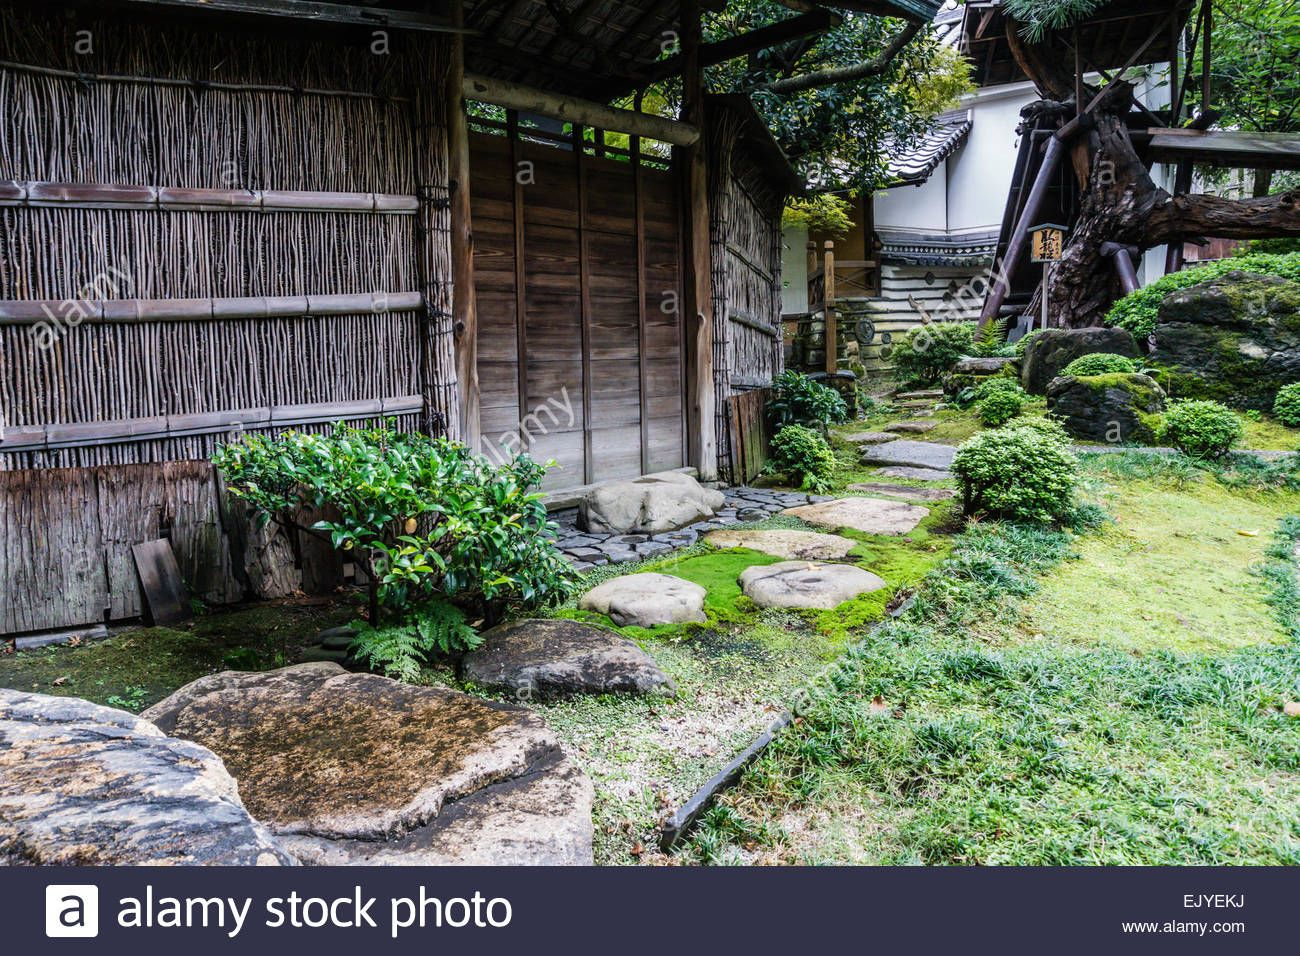 Stock Photo   View Of A Traditional Japanese Garden With Old Bamboo Fence  And Stone Path In Kyoto, Japan